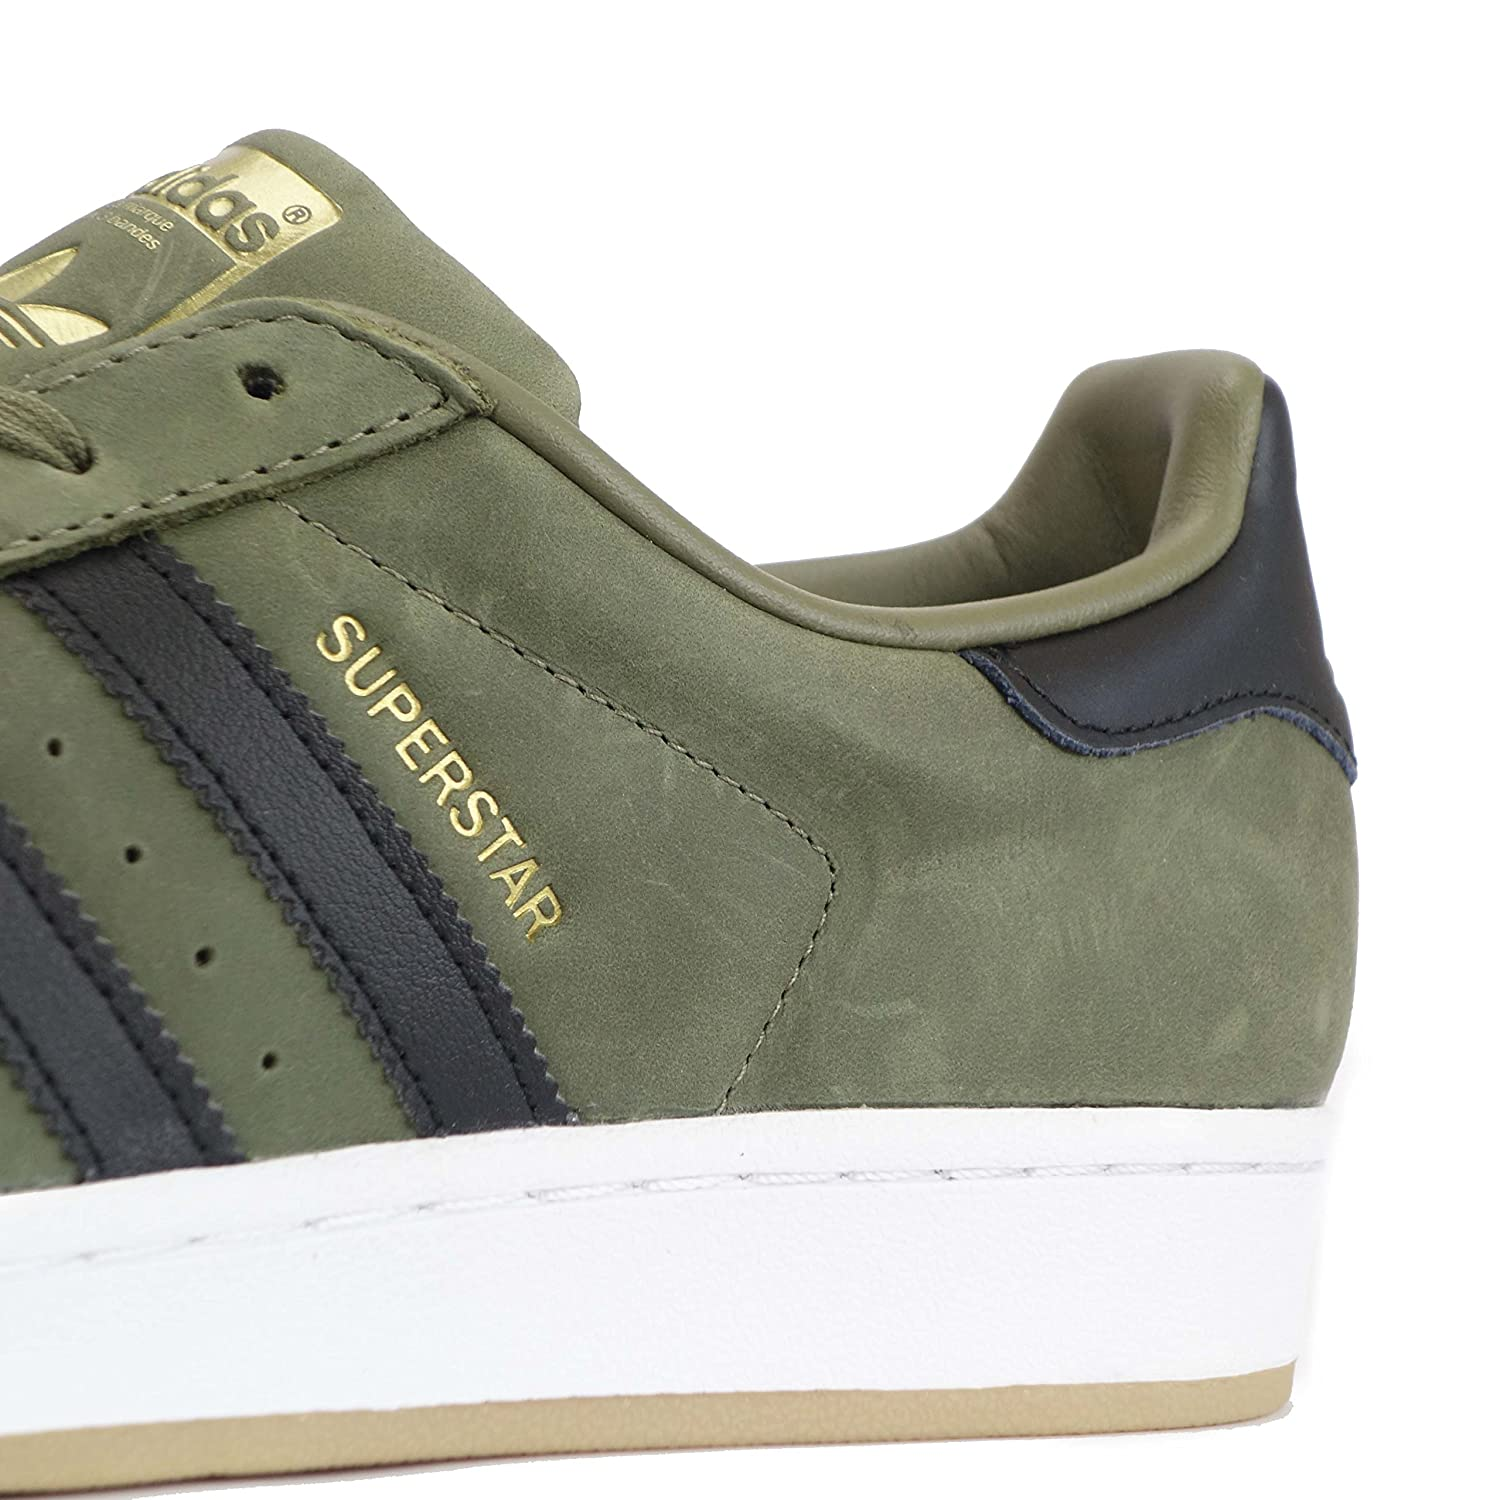 adidas Originals Superstar Waxy Men's Shoes (UK-10.5): Amazon.co.uk: Shoes & Bags